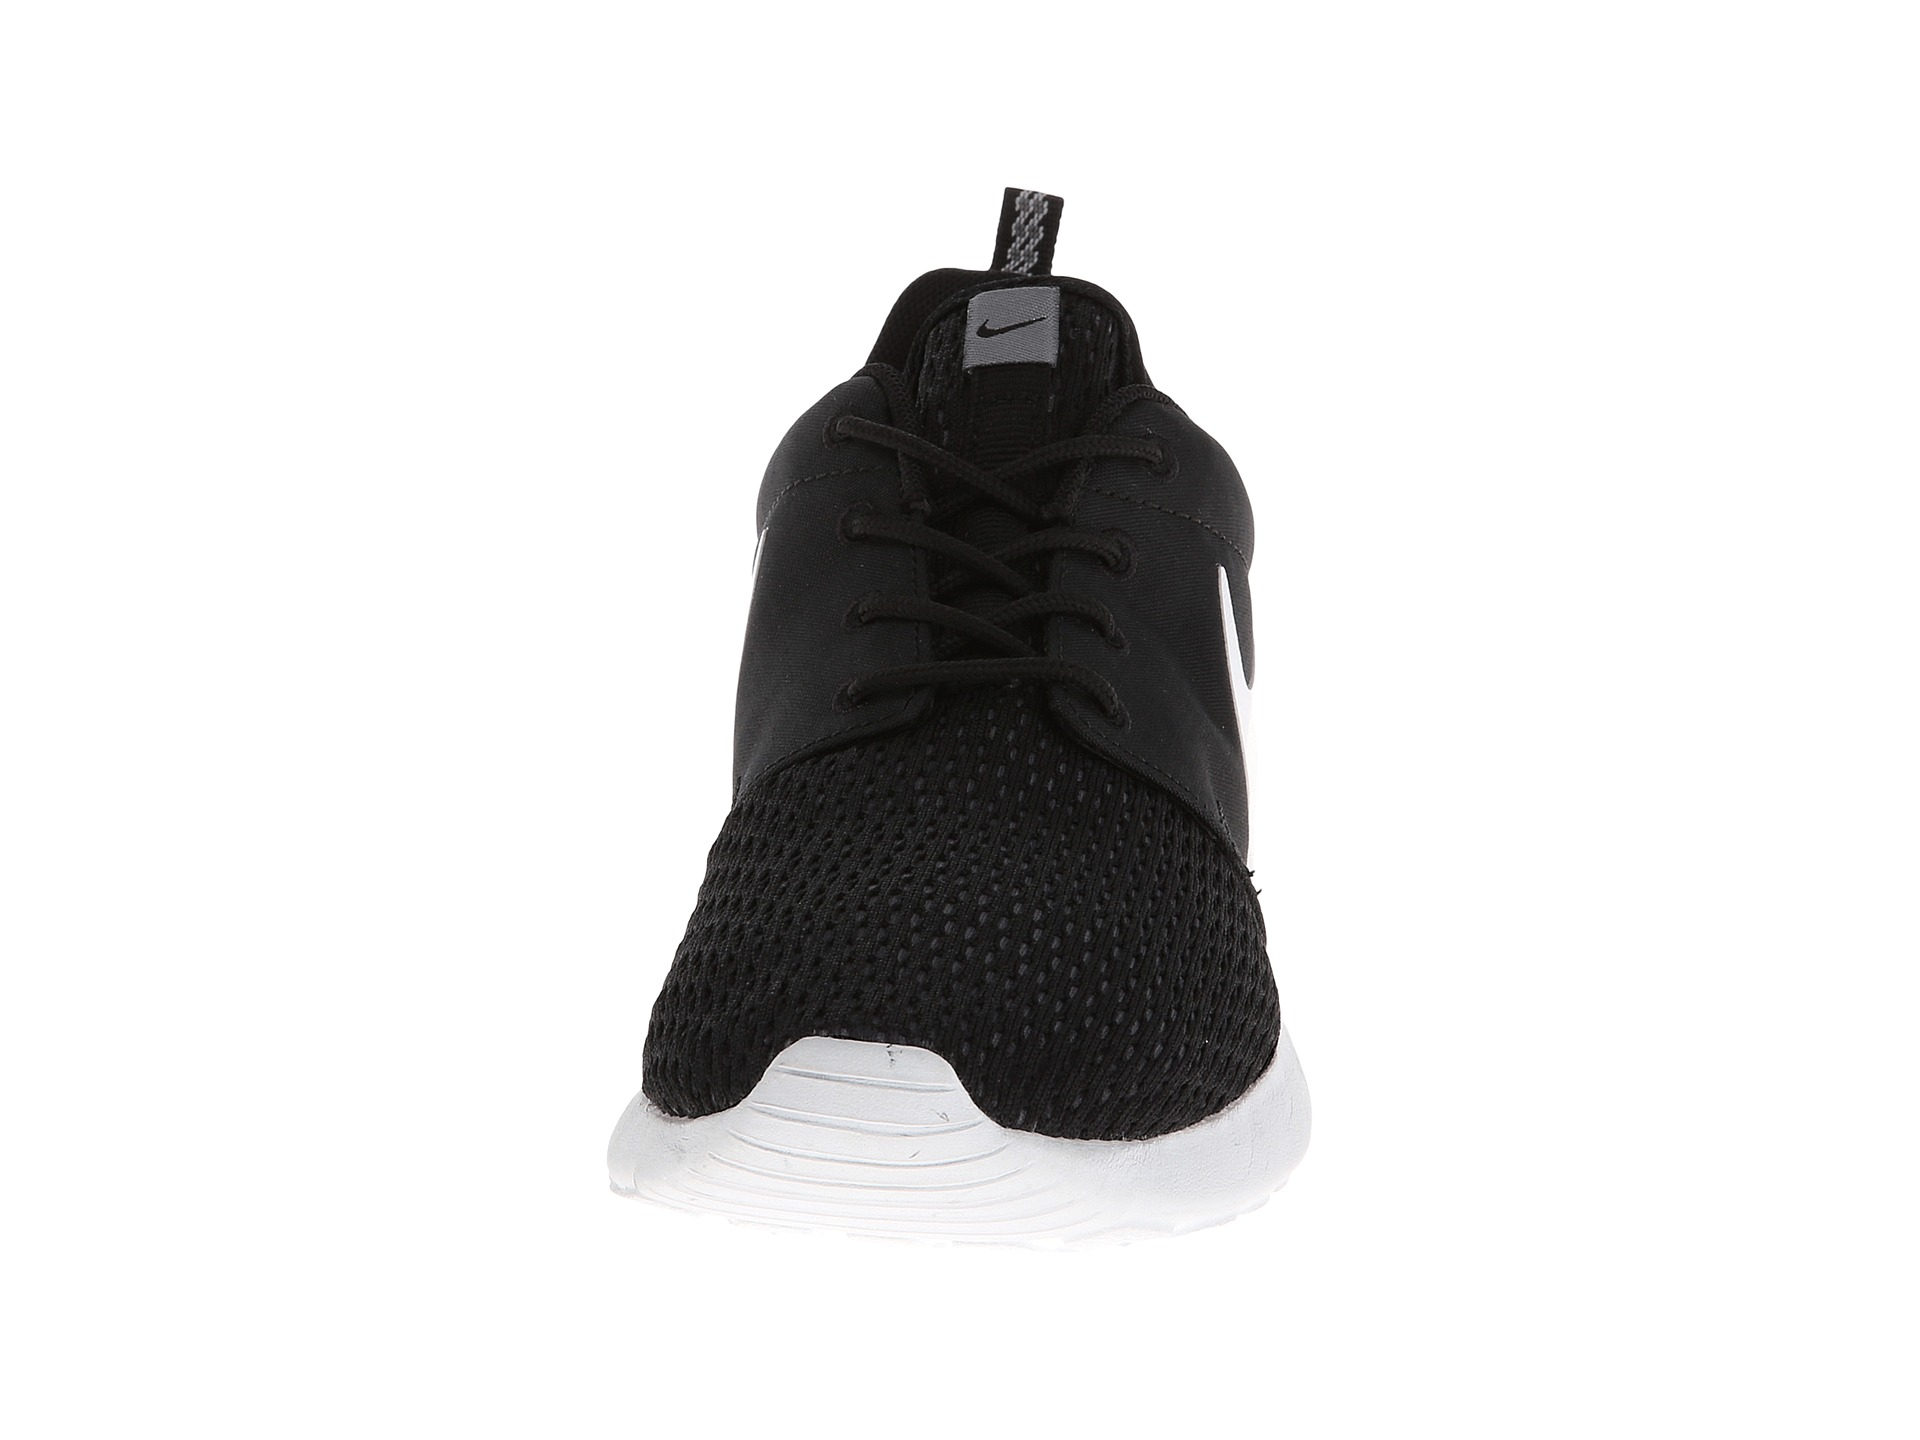 Roshe Run Black Sail Speckle Nike roshe run - zappos.com